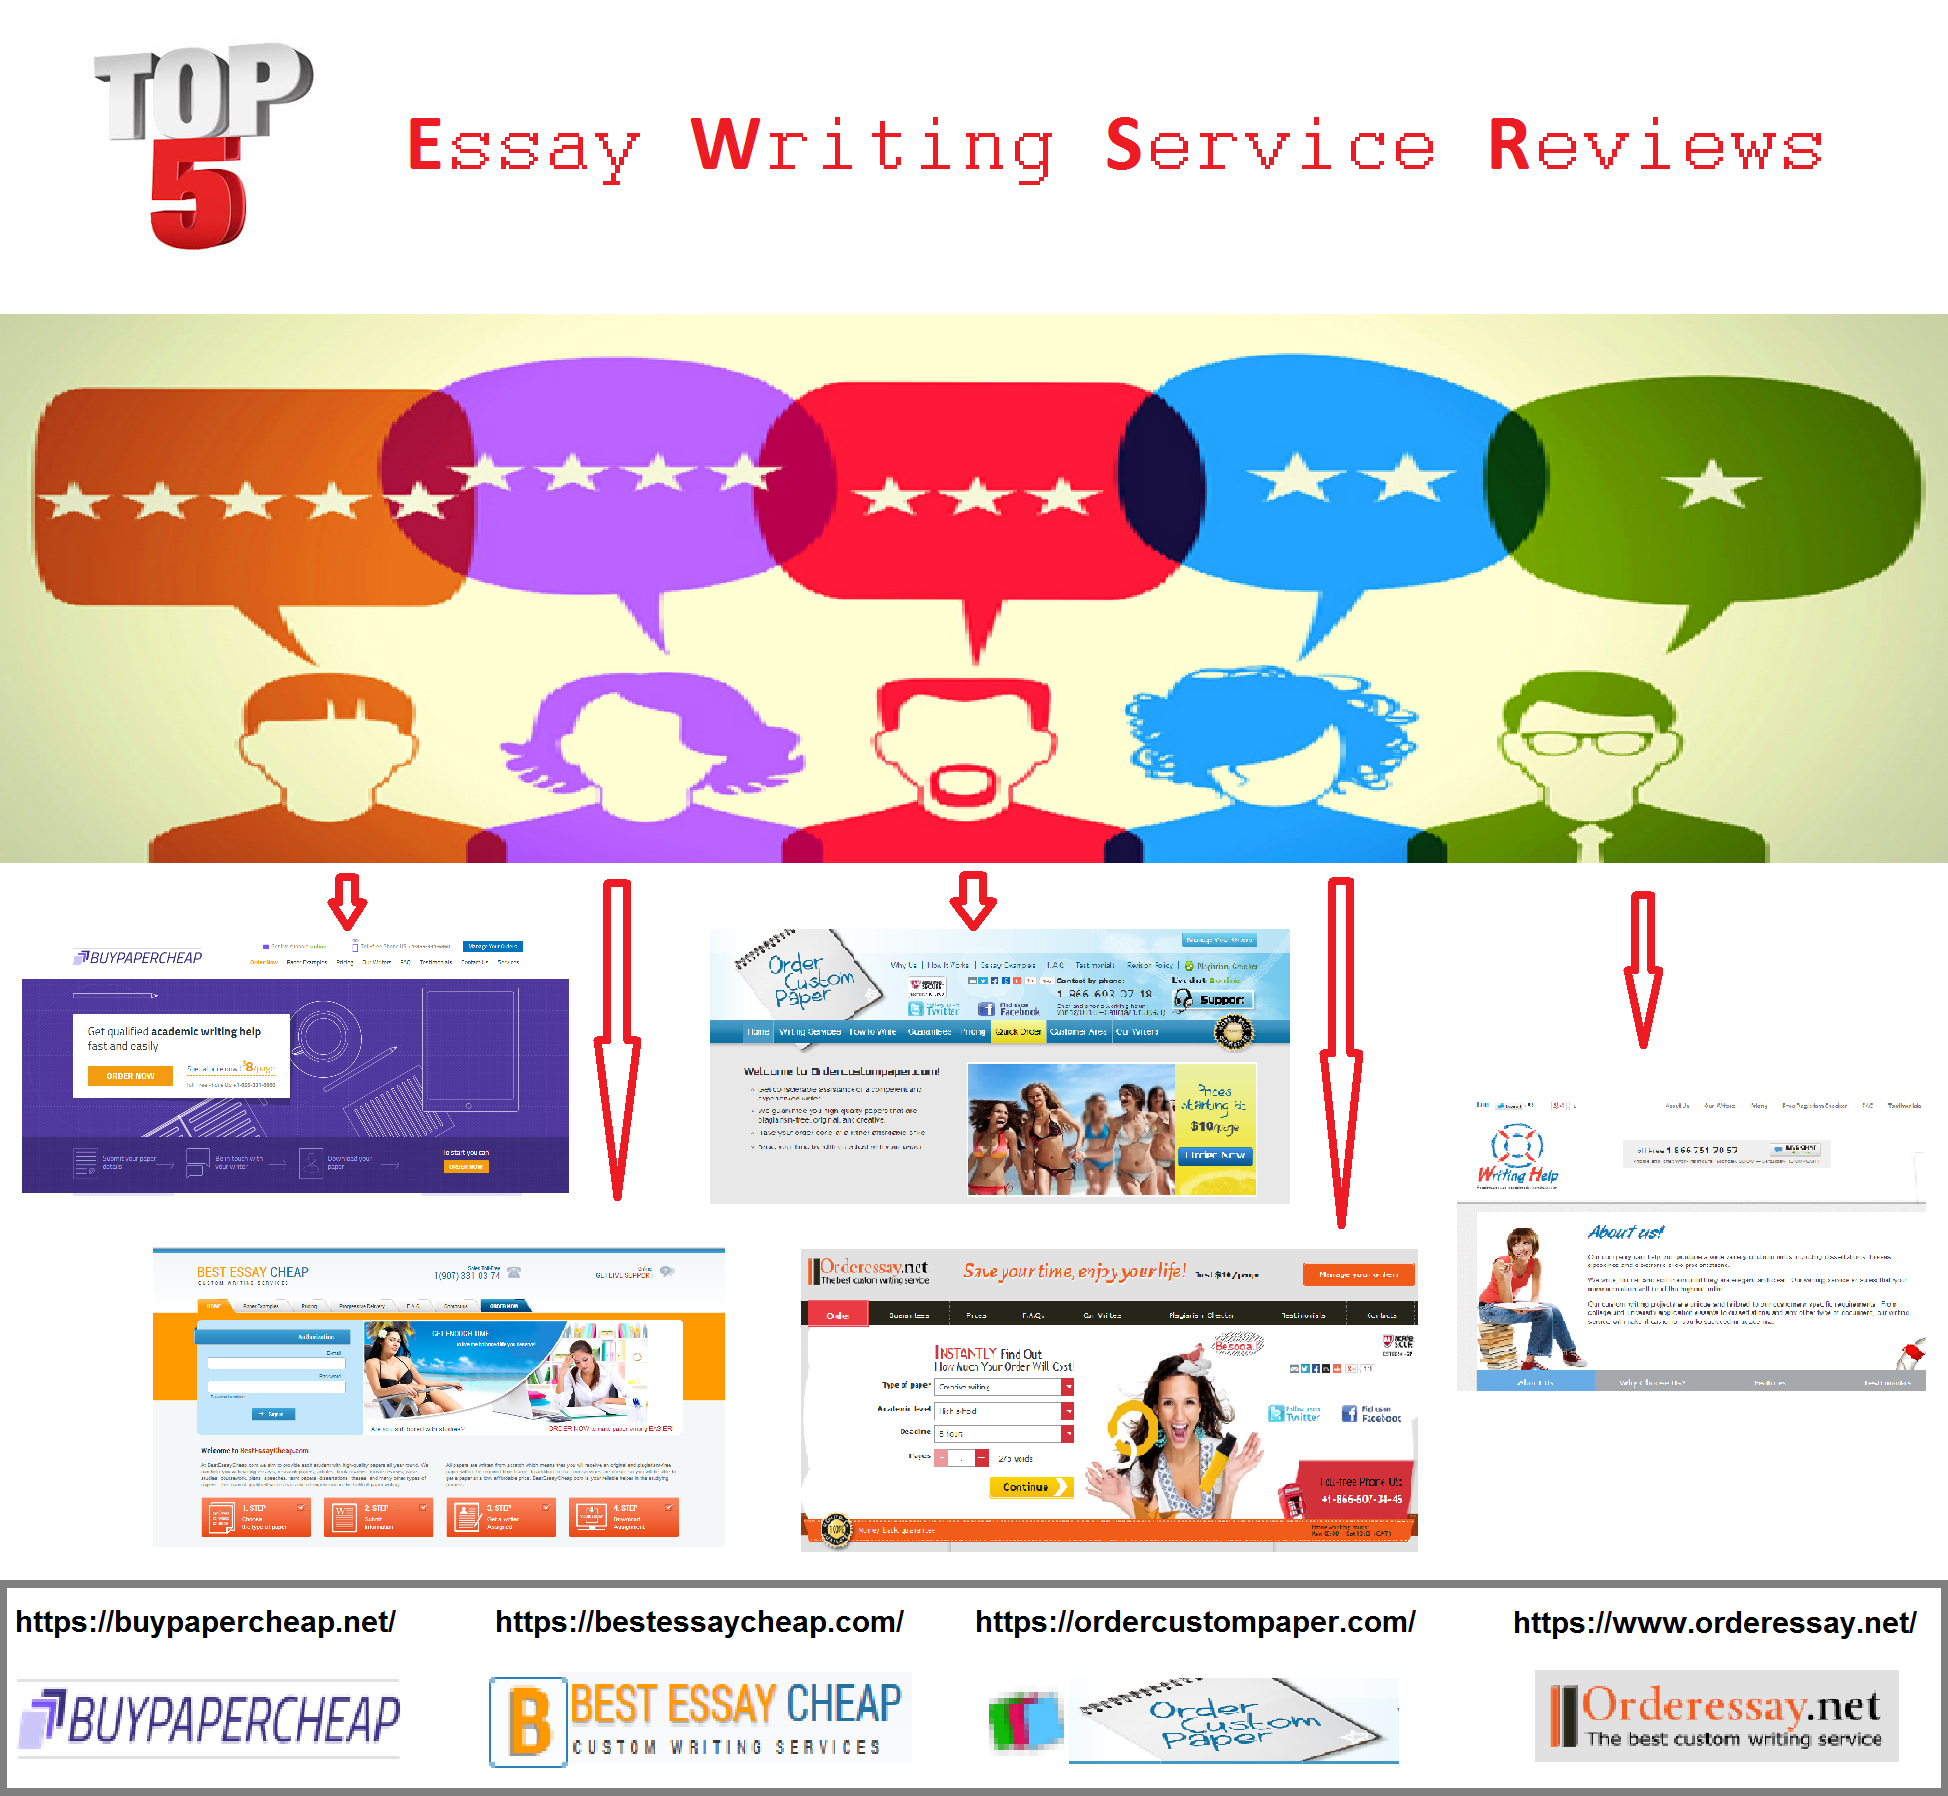 001 Best Essay Writing Service Review Pros Of Services Reviews Top Uk Singular Reddit Full